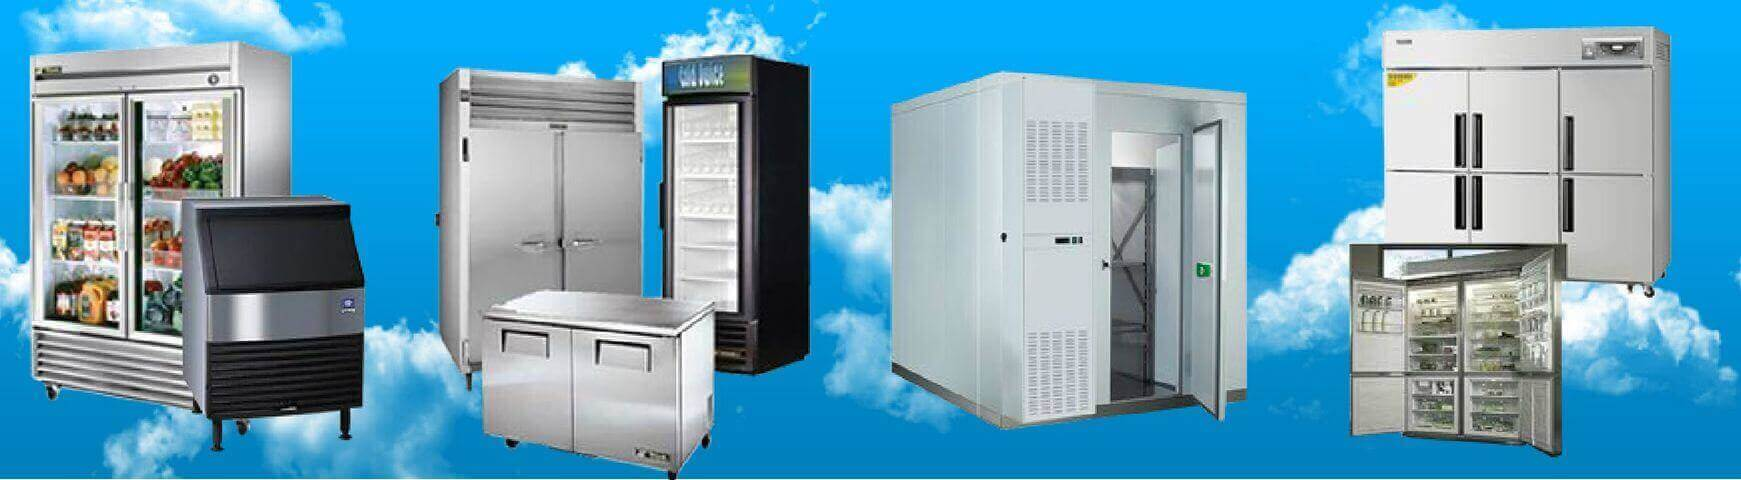 Fridge Sale, Service & Repair Singapore